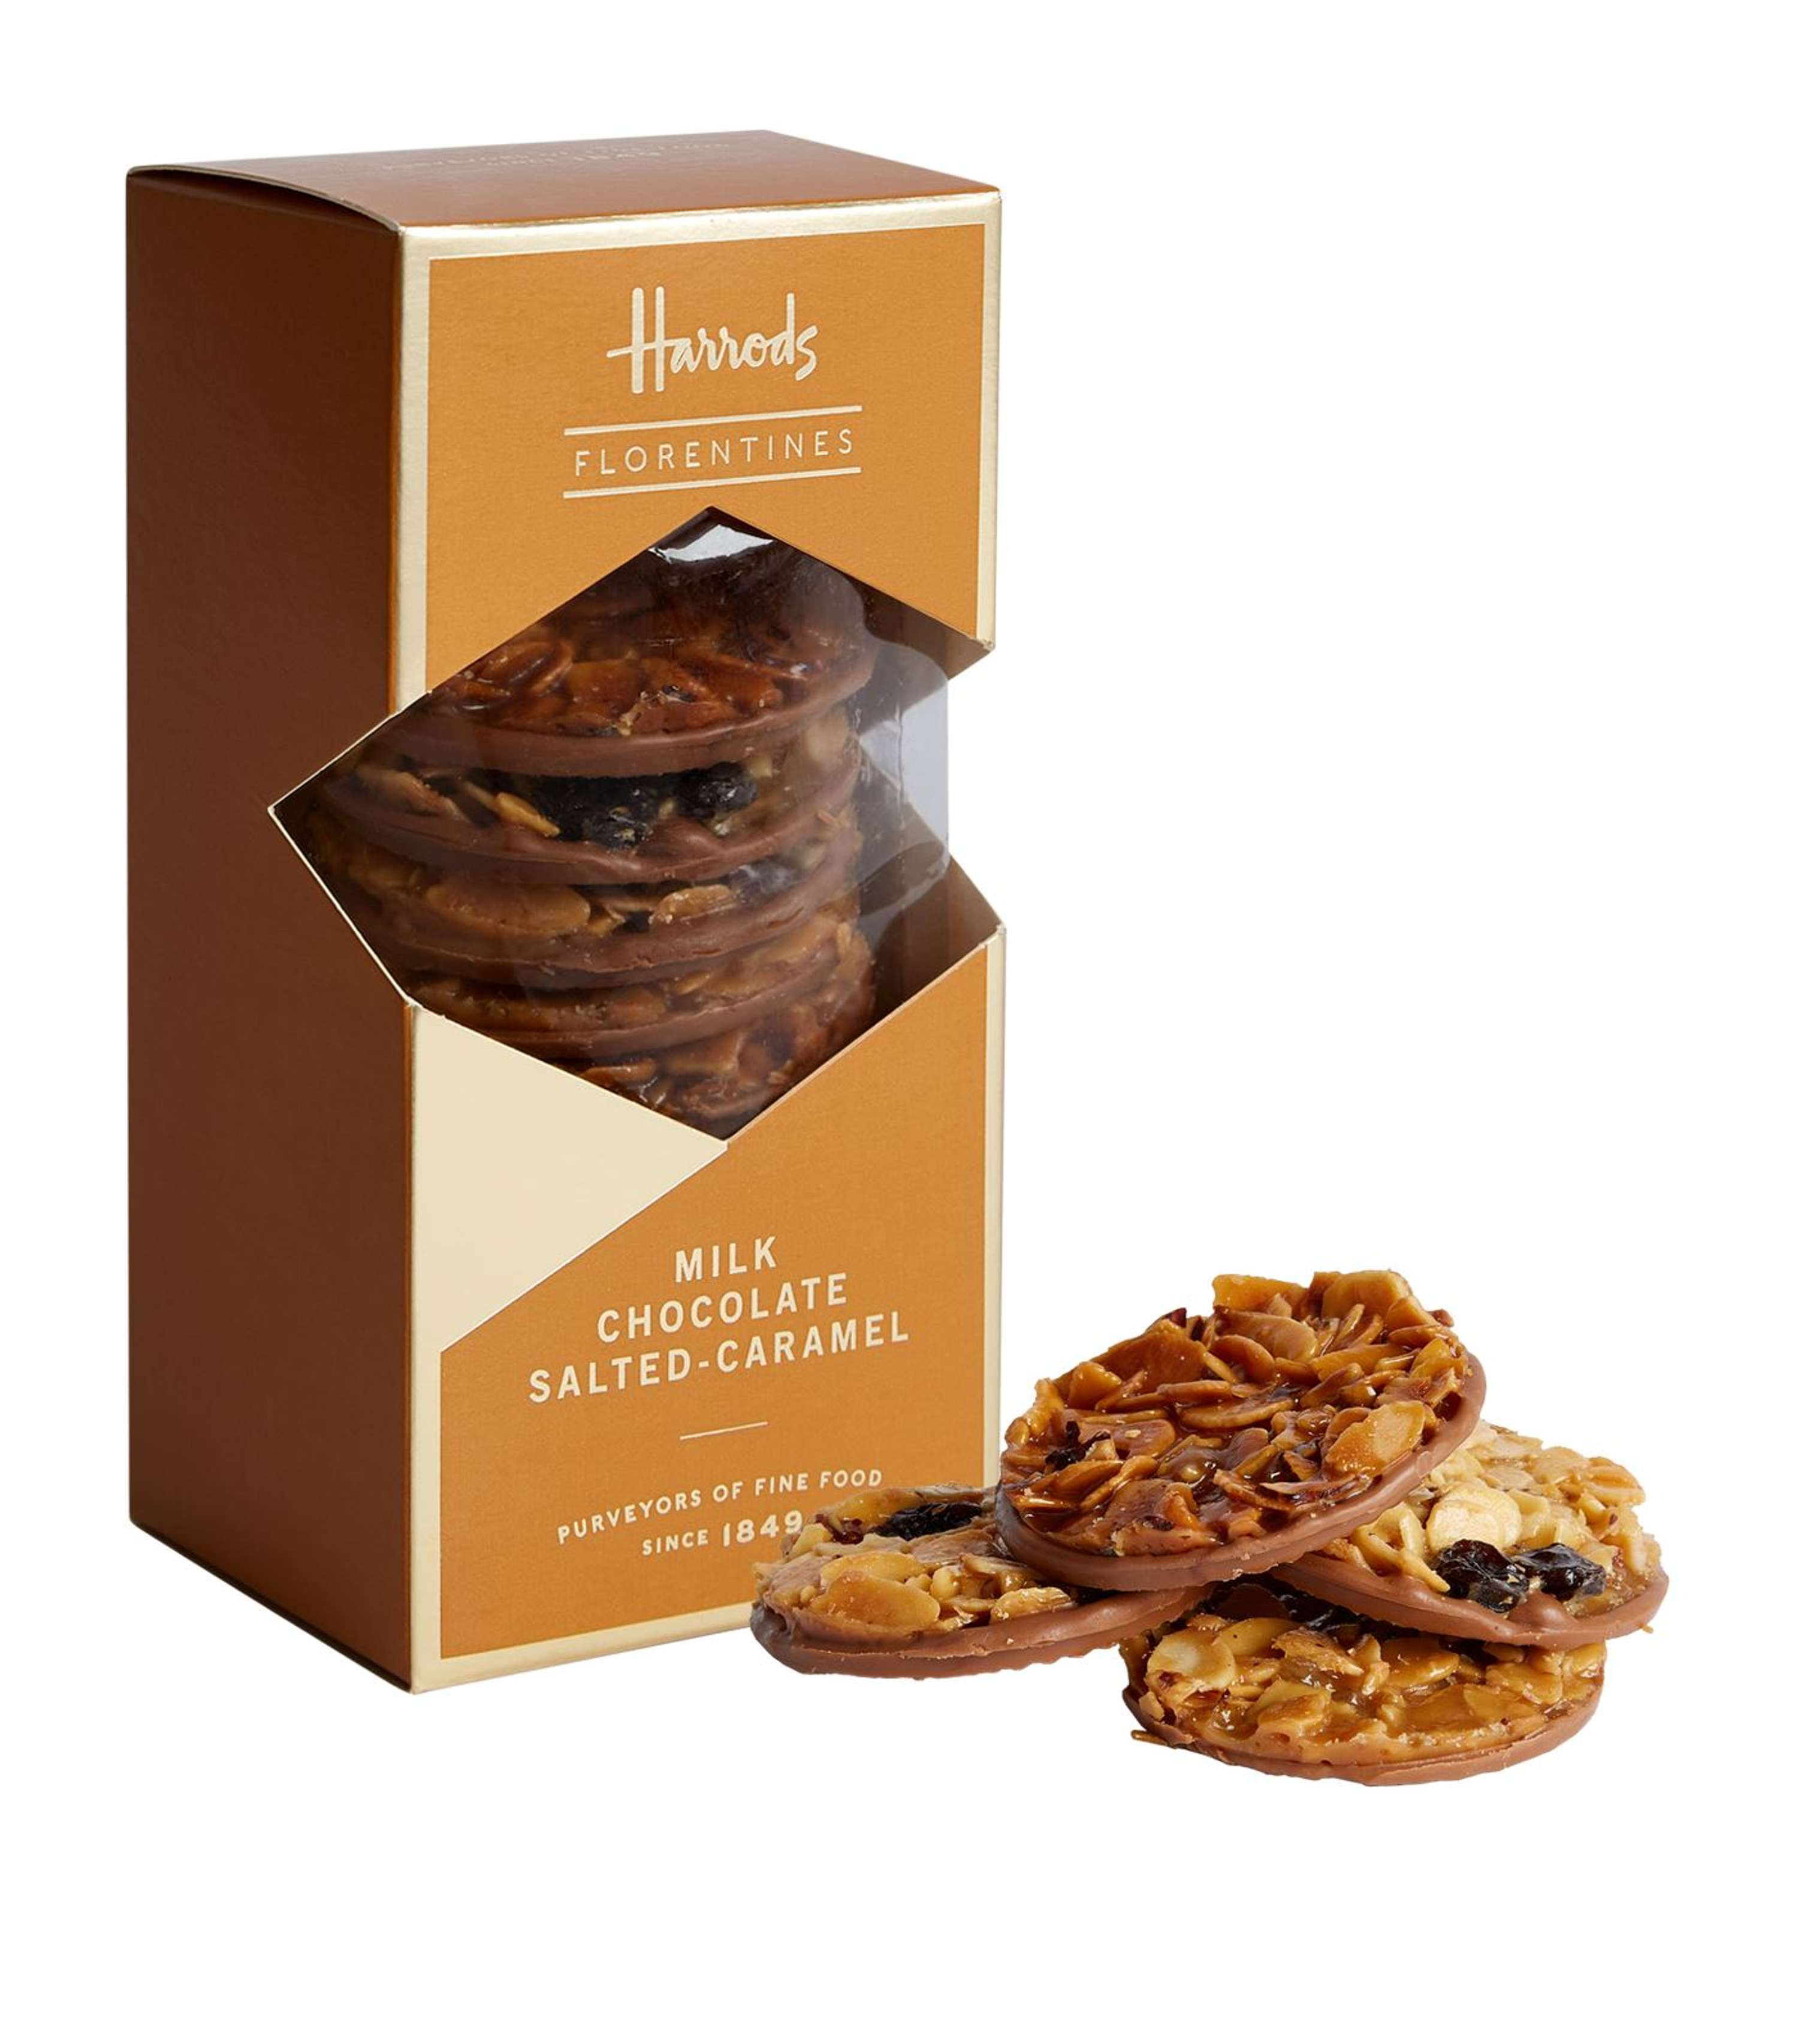 Luxury Chocolate Biscuits The Dots